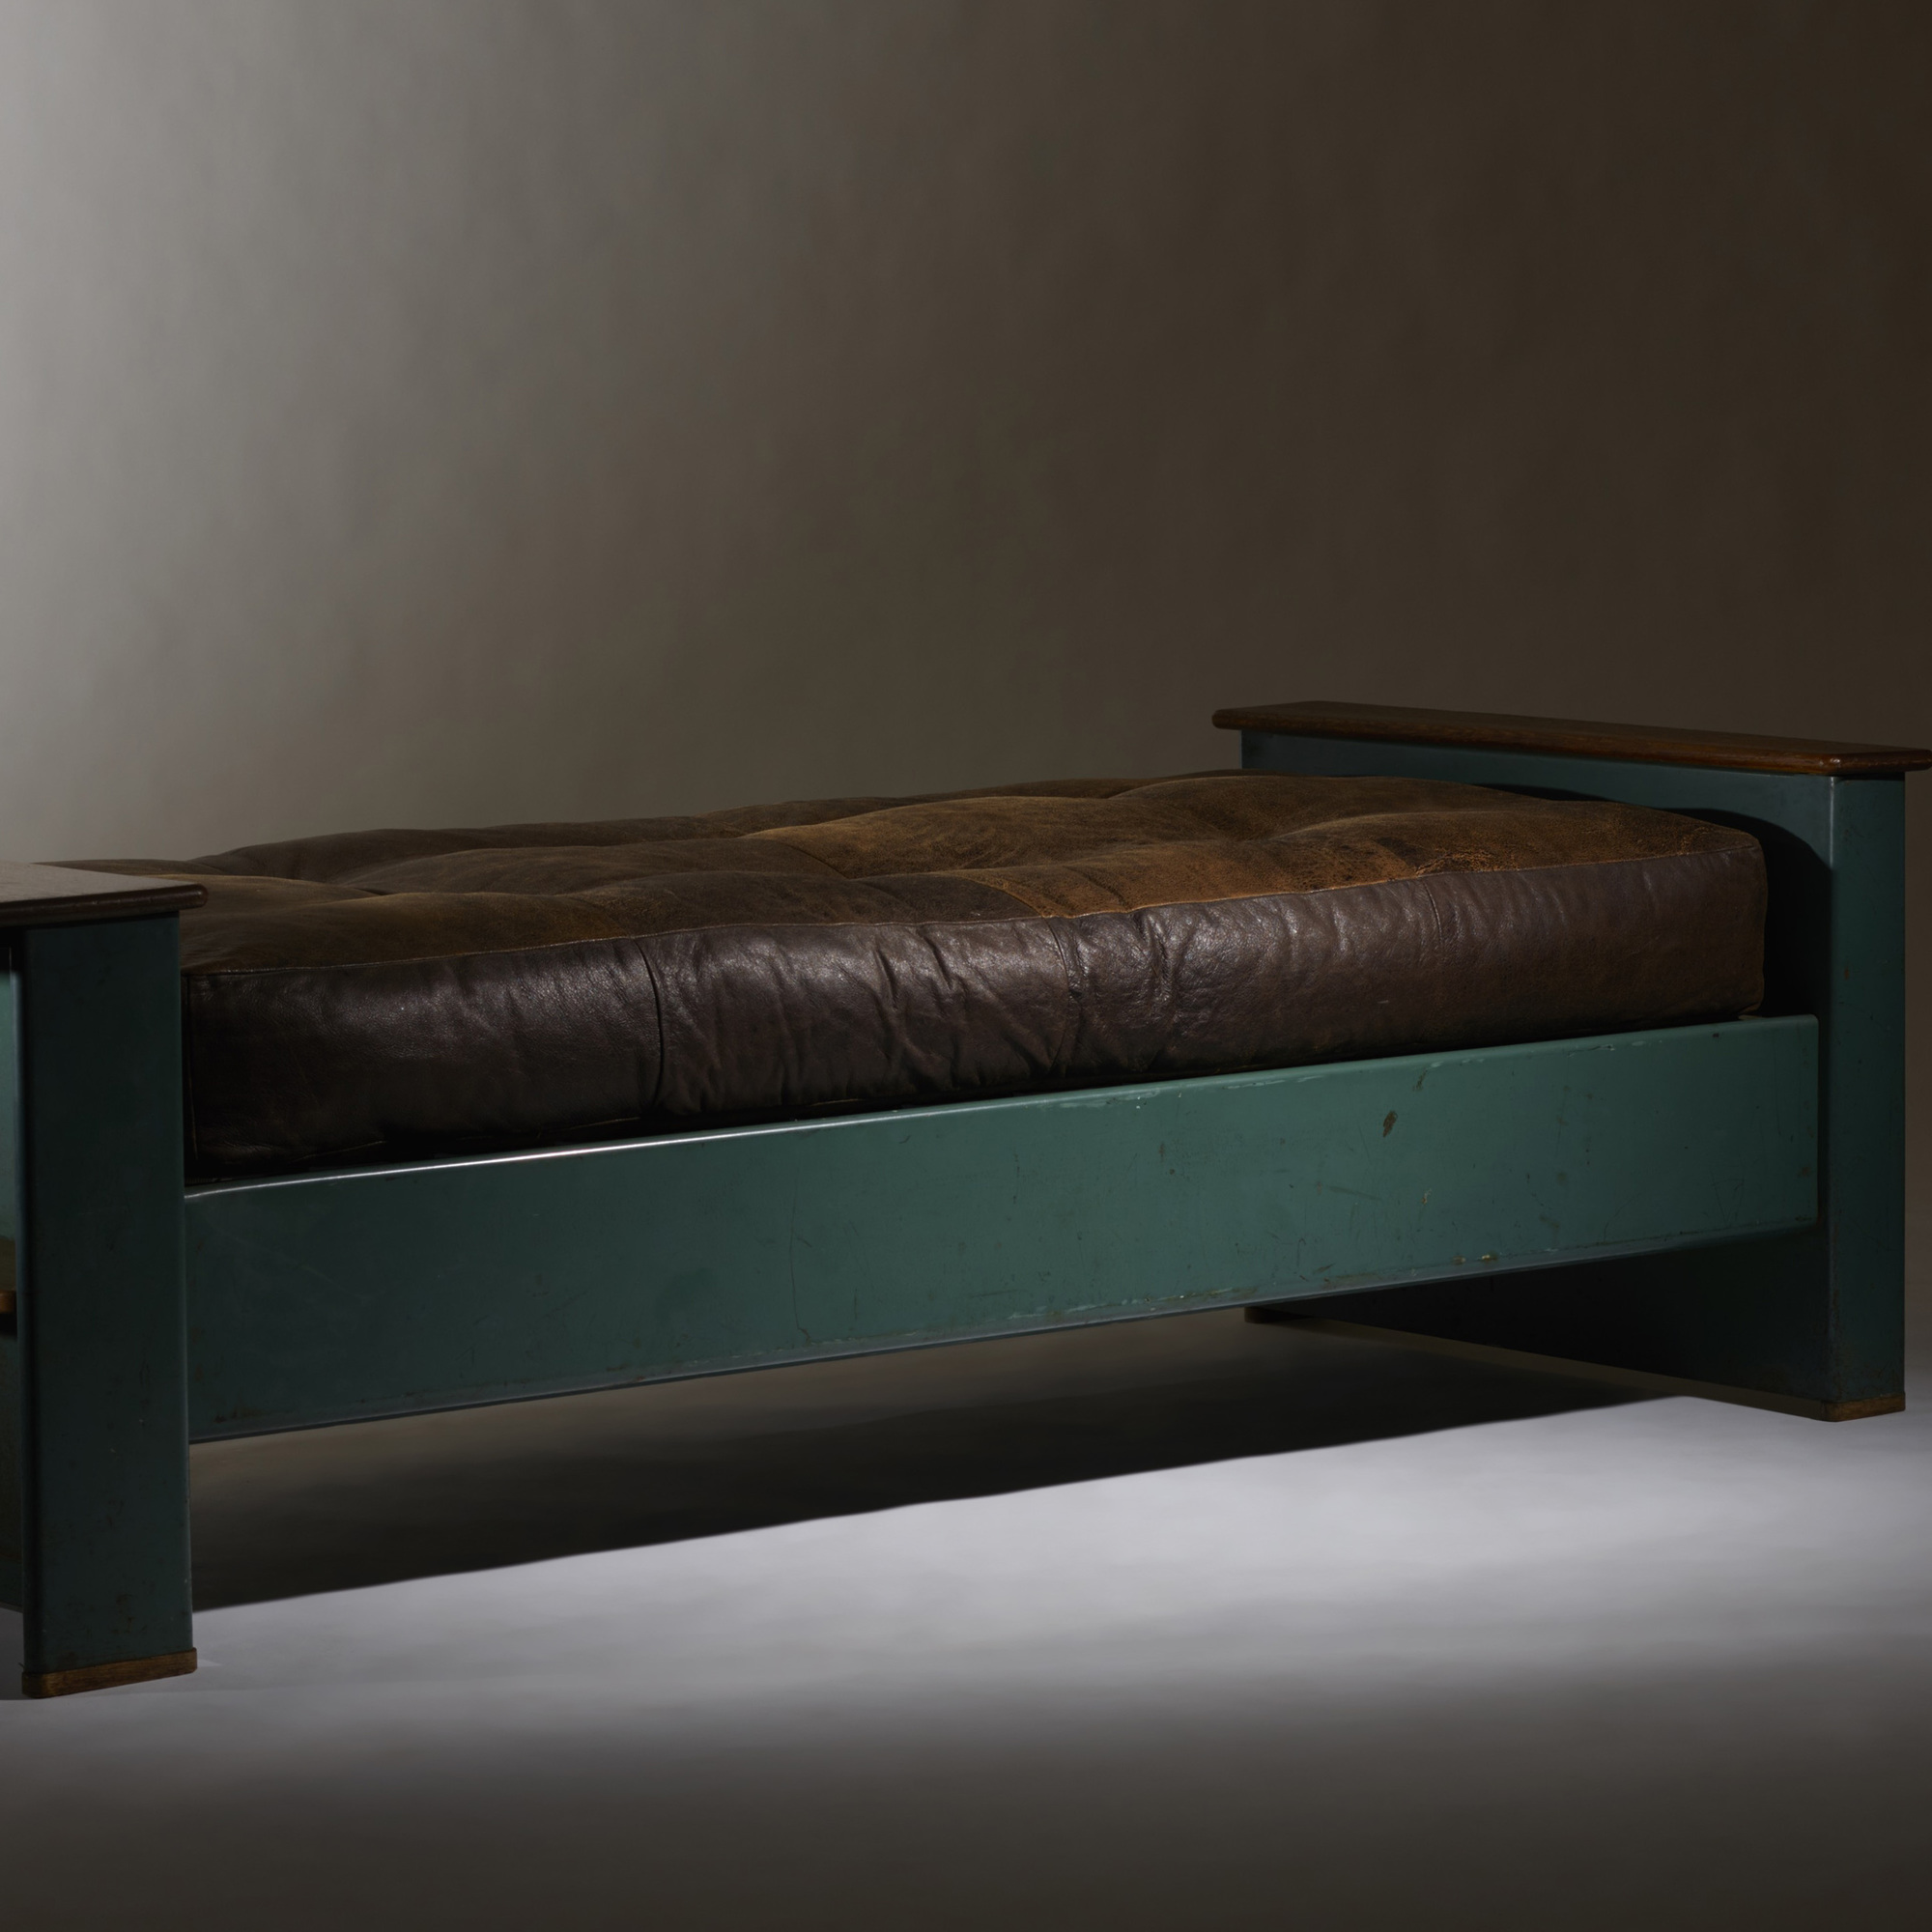 136: Jean  Prouvé / bed no. 102 from Lycée Fabert, Metz (3 of 3)